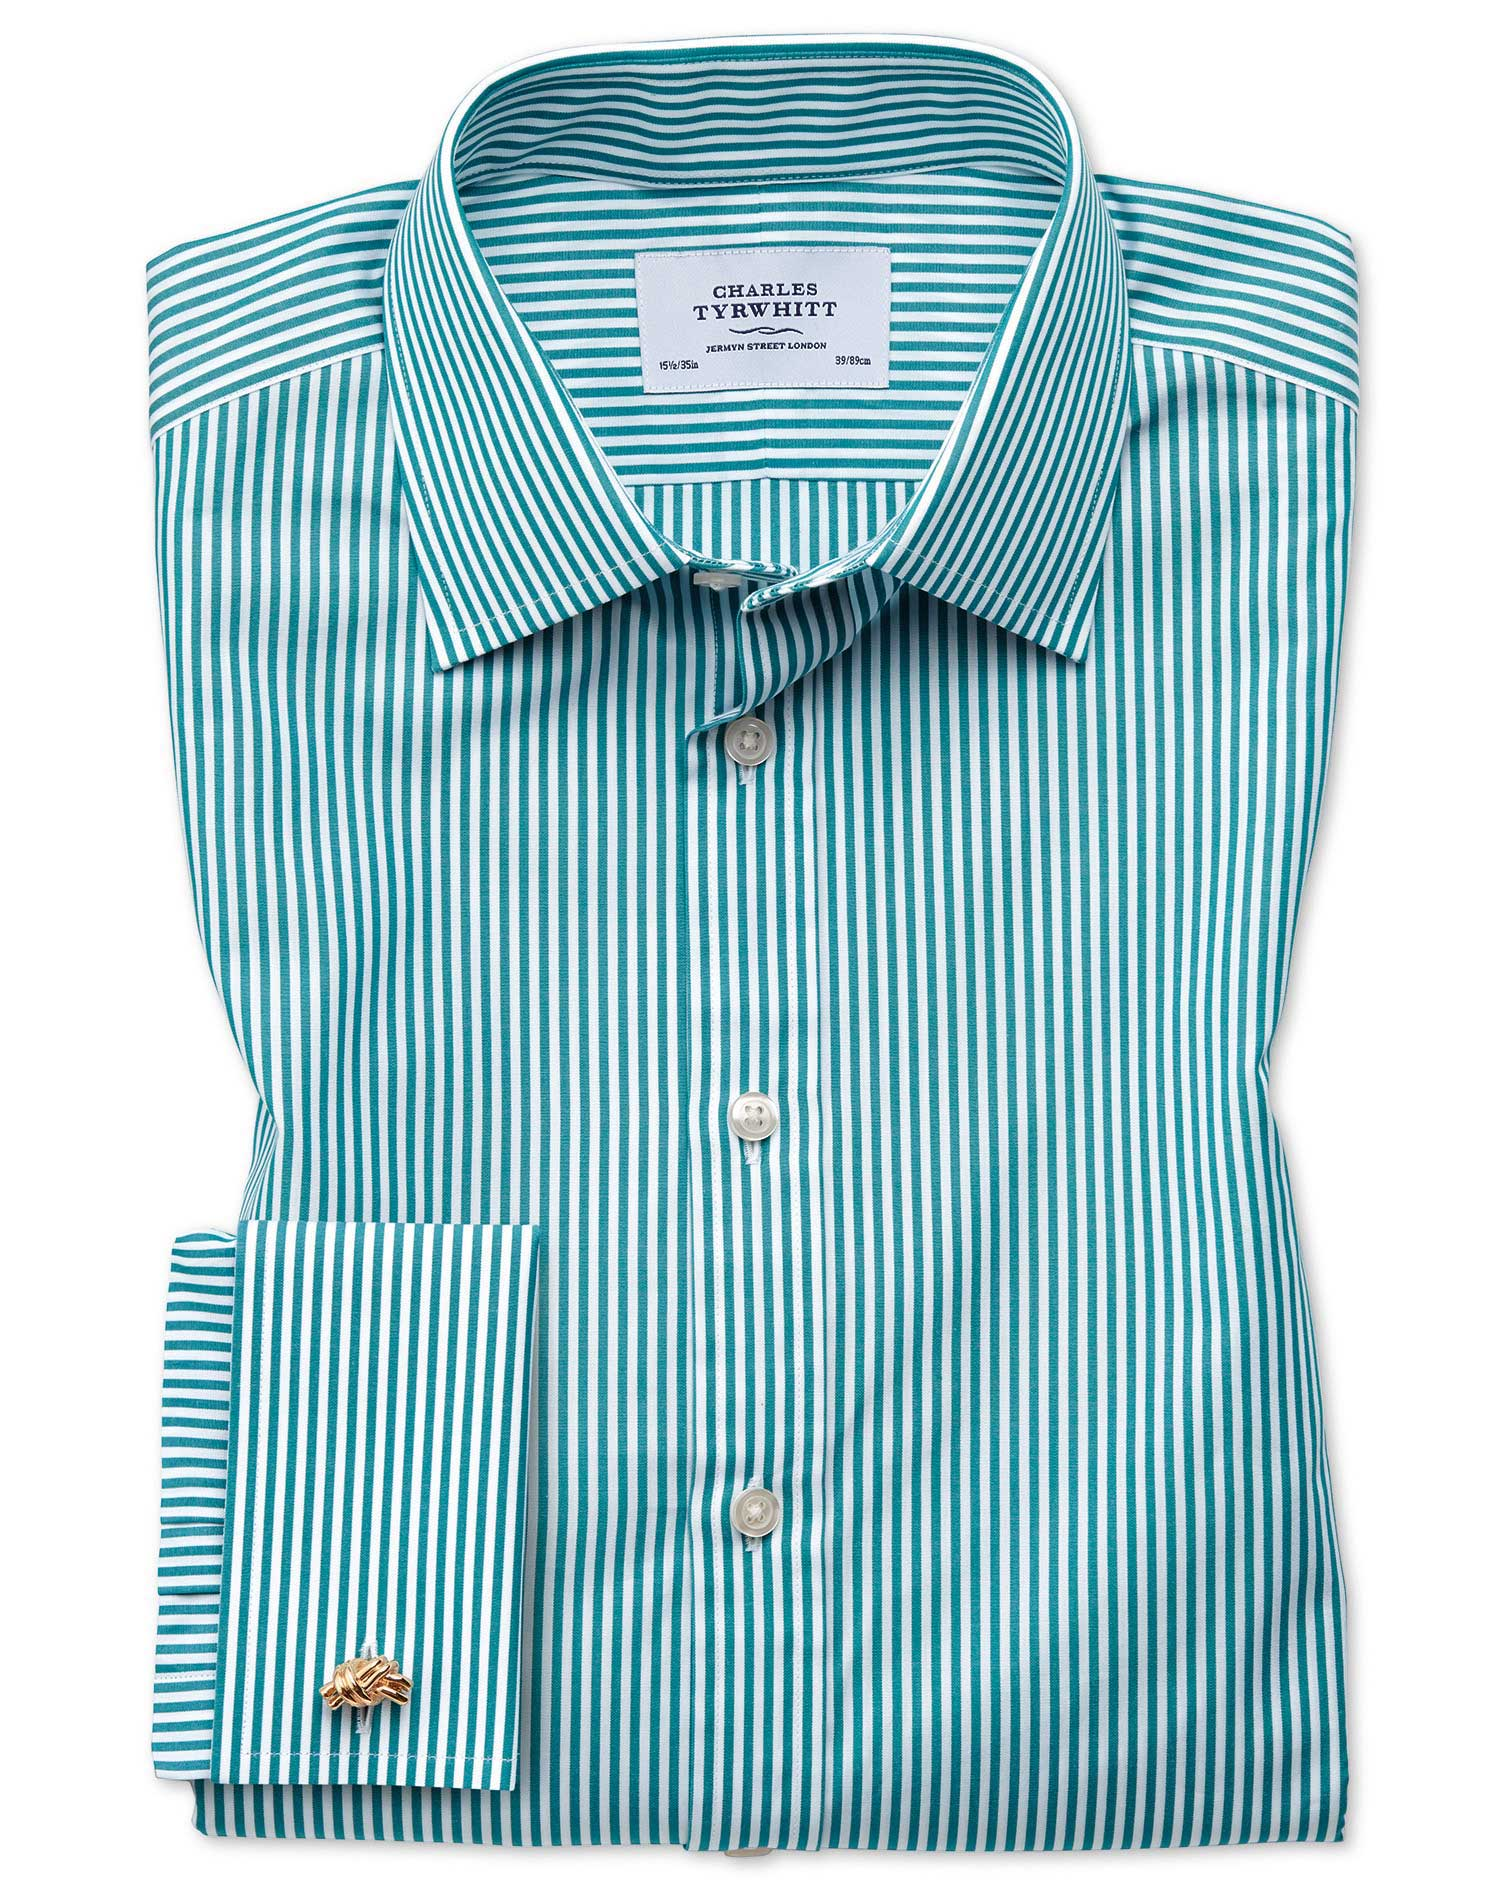 Slim Fit Bengal Stripe Green Cotton Formal Shirt Double Cuff Size 15/34 by Charles Tyrwhitt